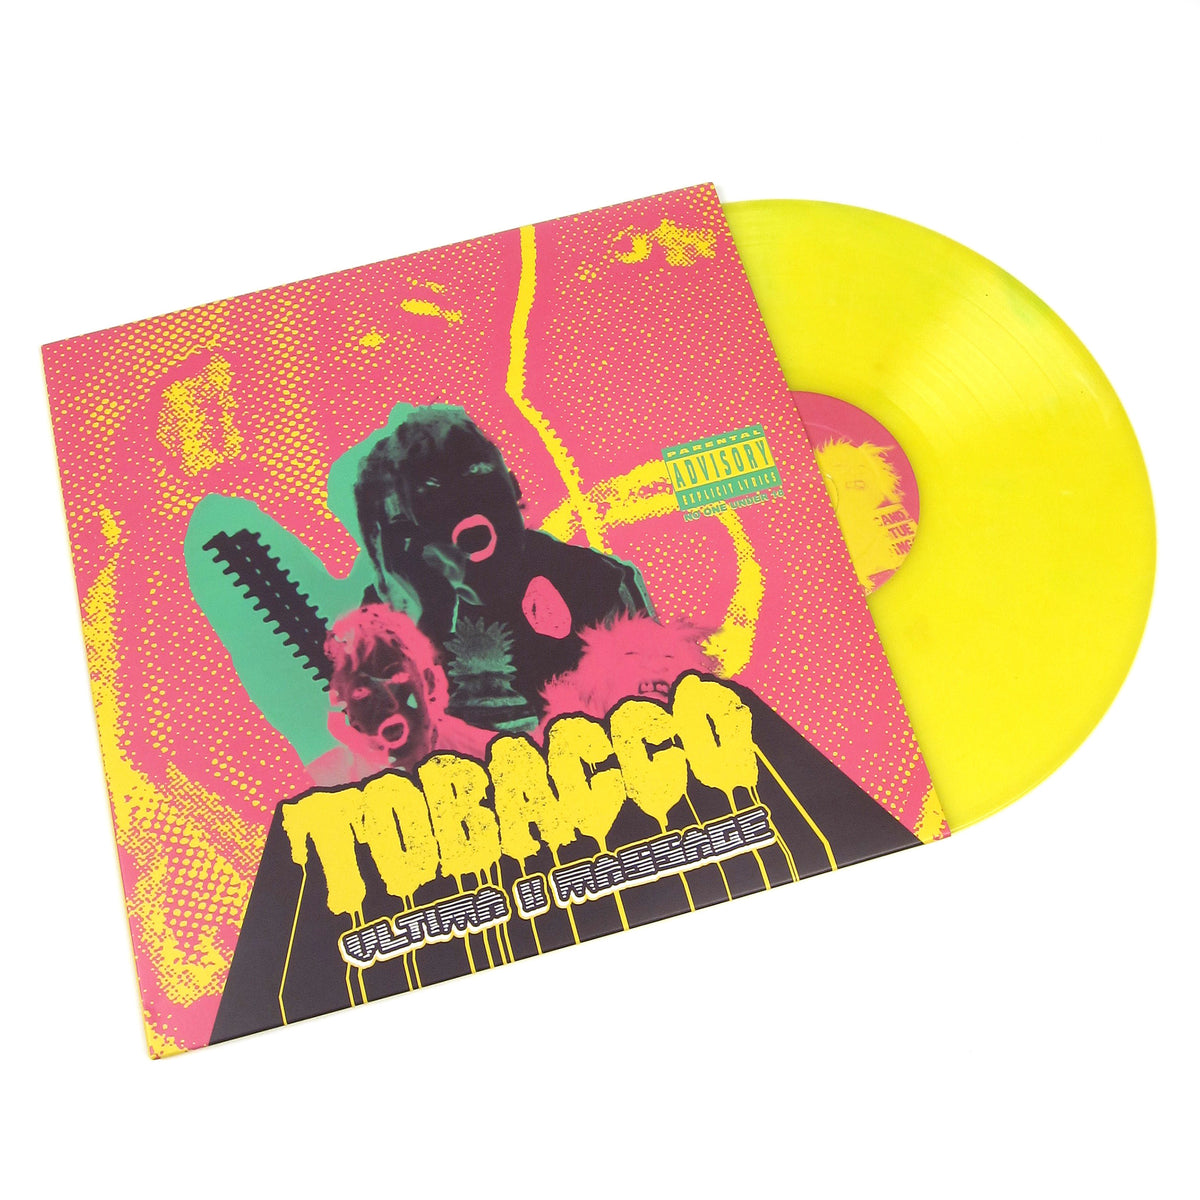 Tobacco: Ultima II Massage (Colored Vinyl) Vinyl 2LP